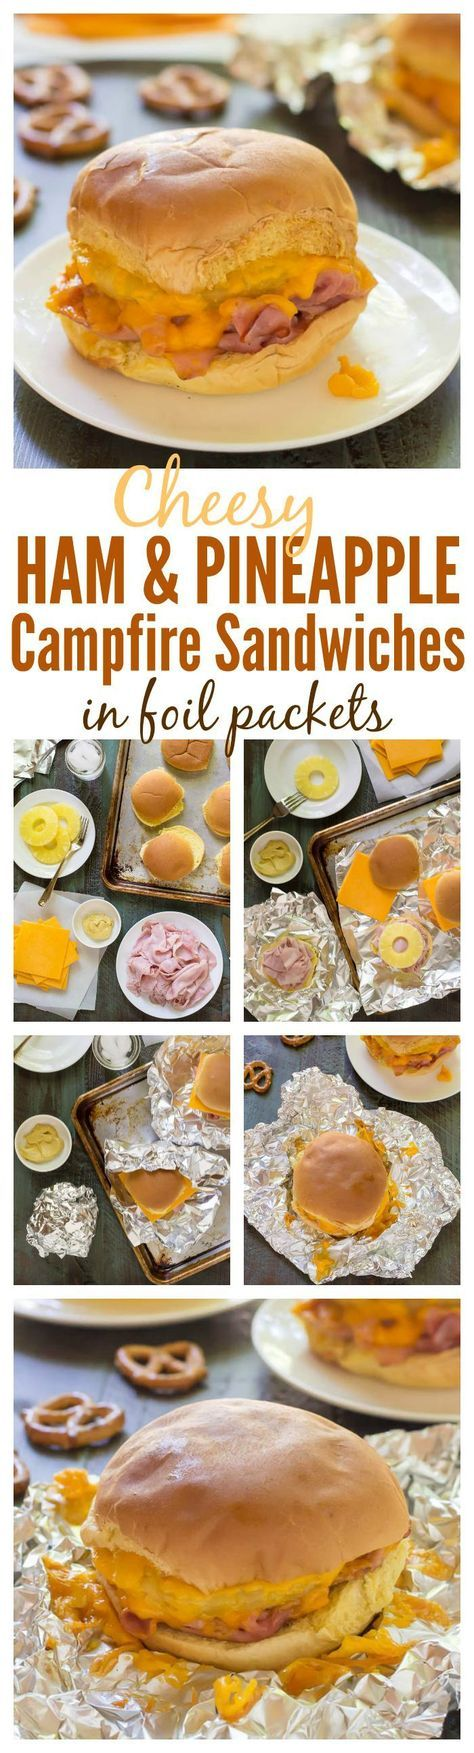 Cheesy Ham and Pineapple Sandwiches